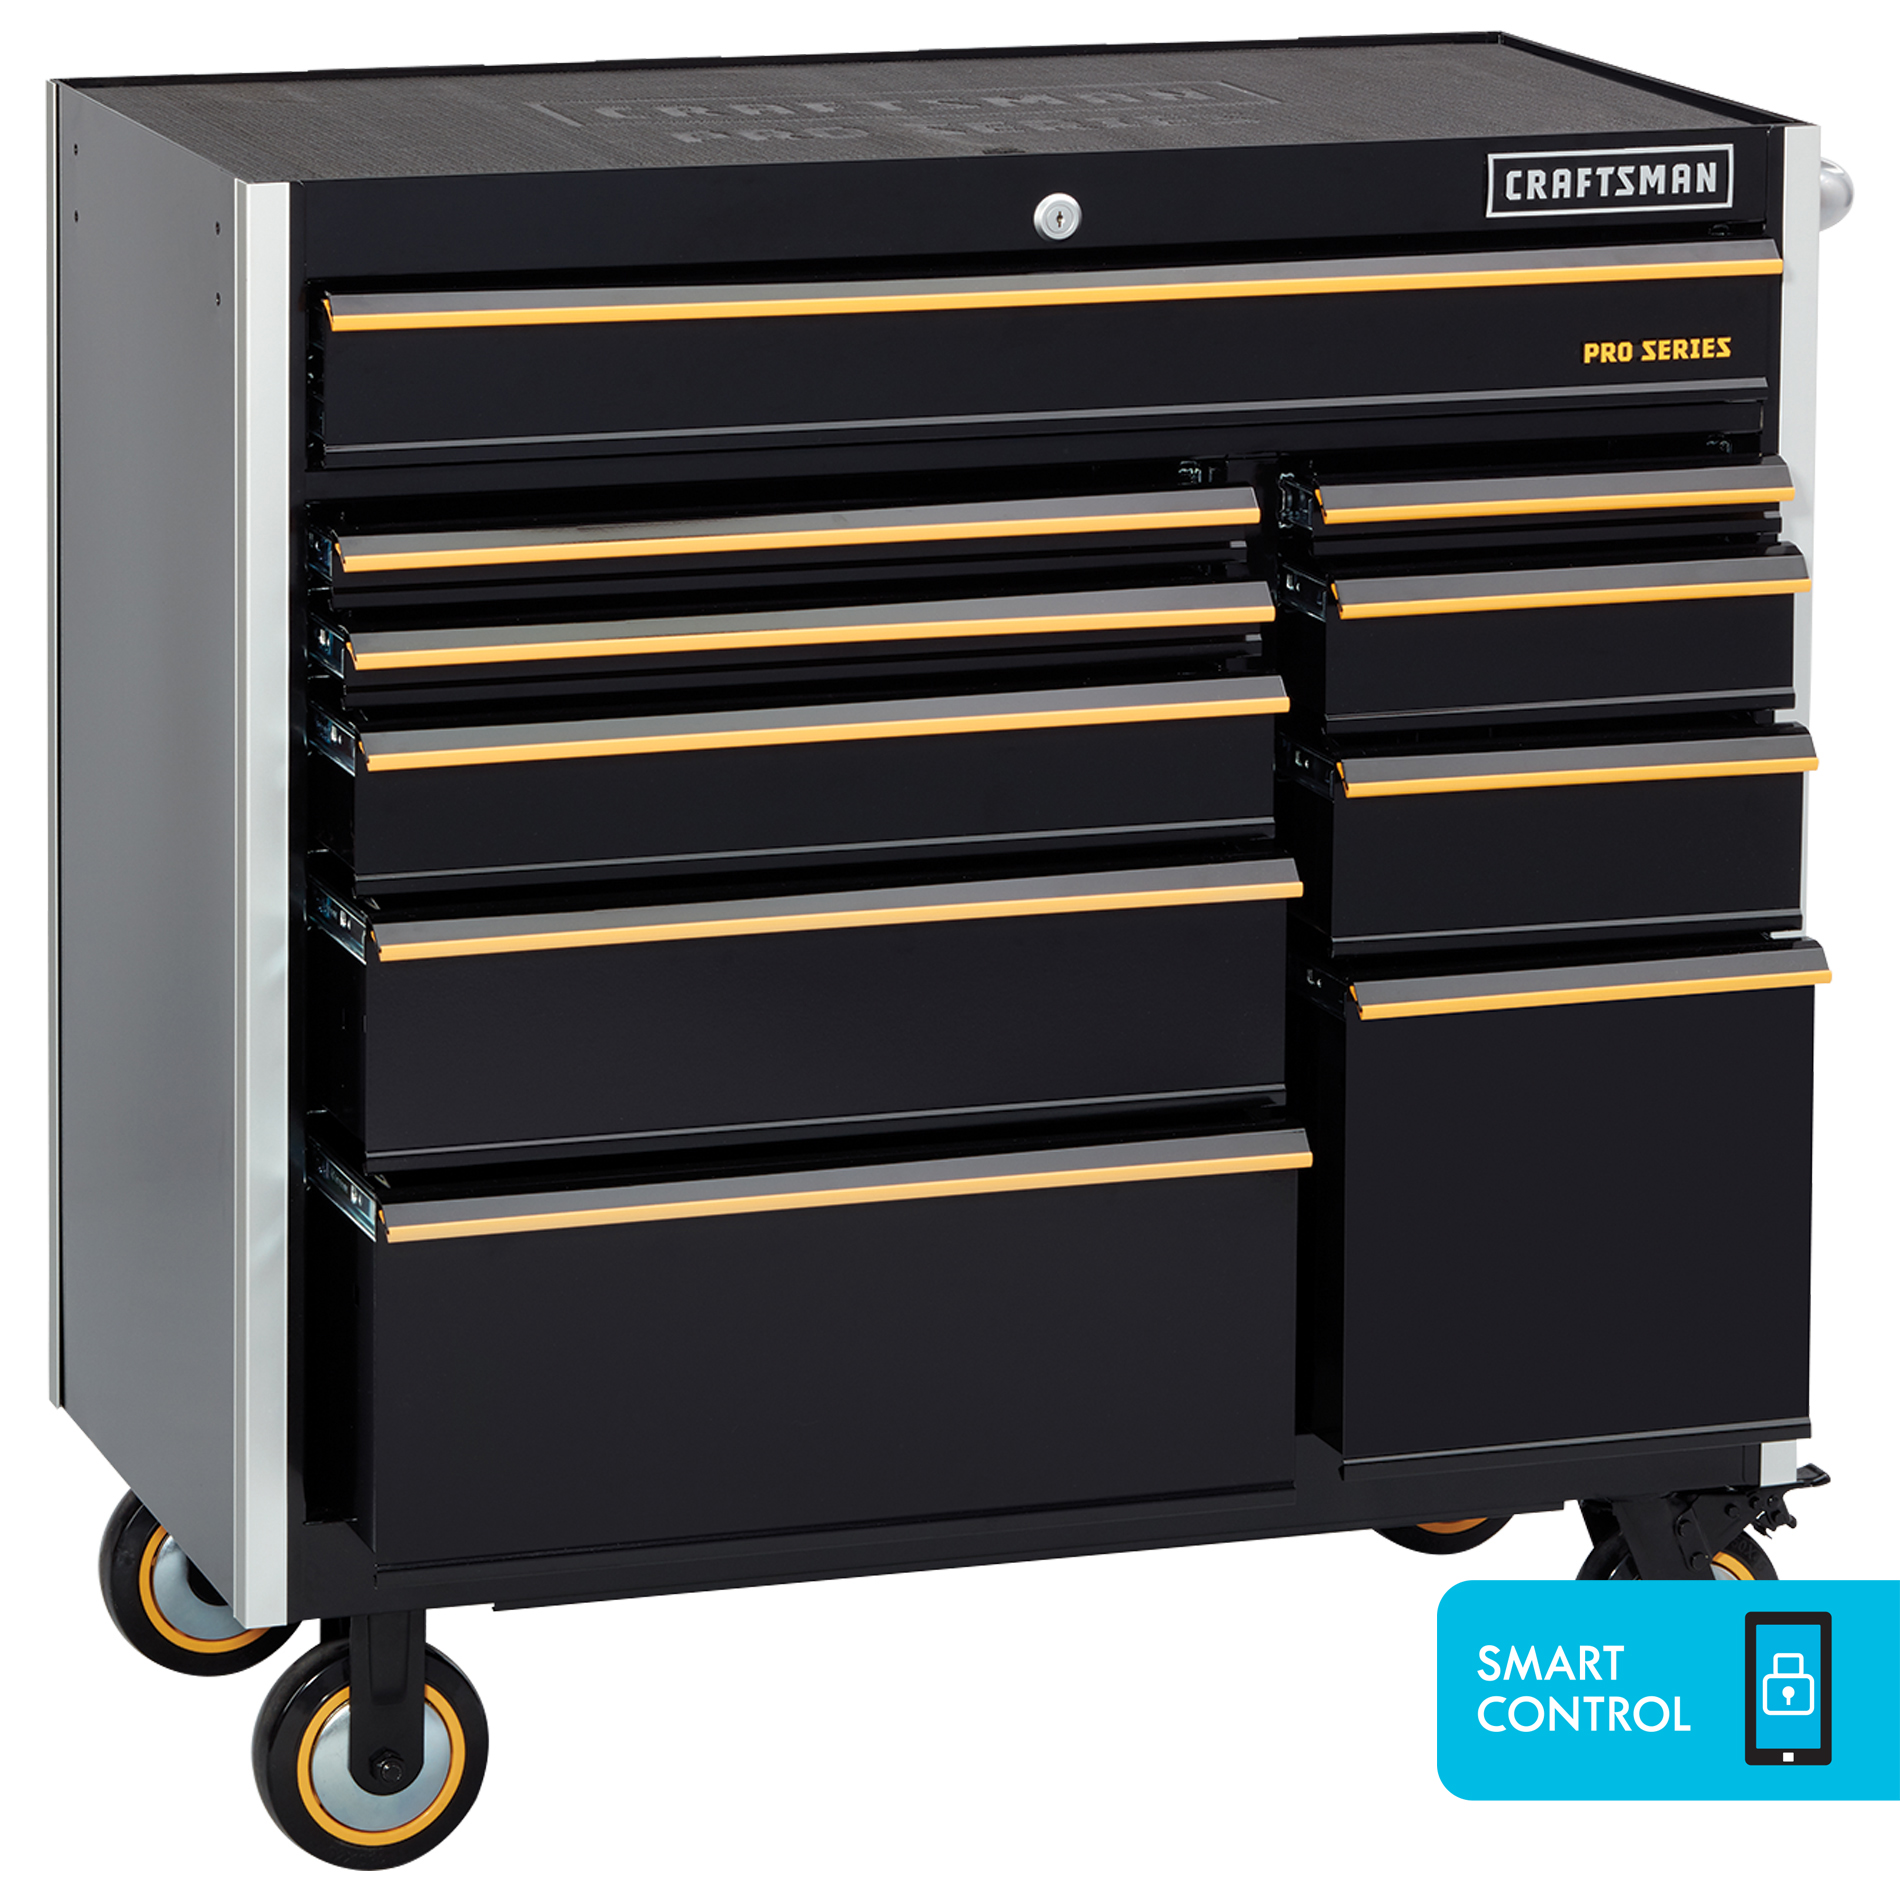 "Craftsman ProSeries 41"""" 10-Drawer Rolling Cart with Smart Control - Black"